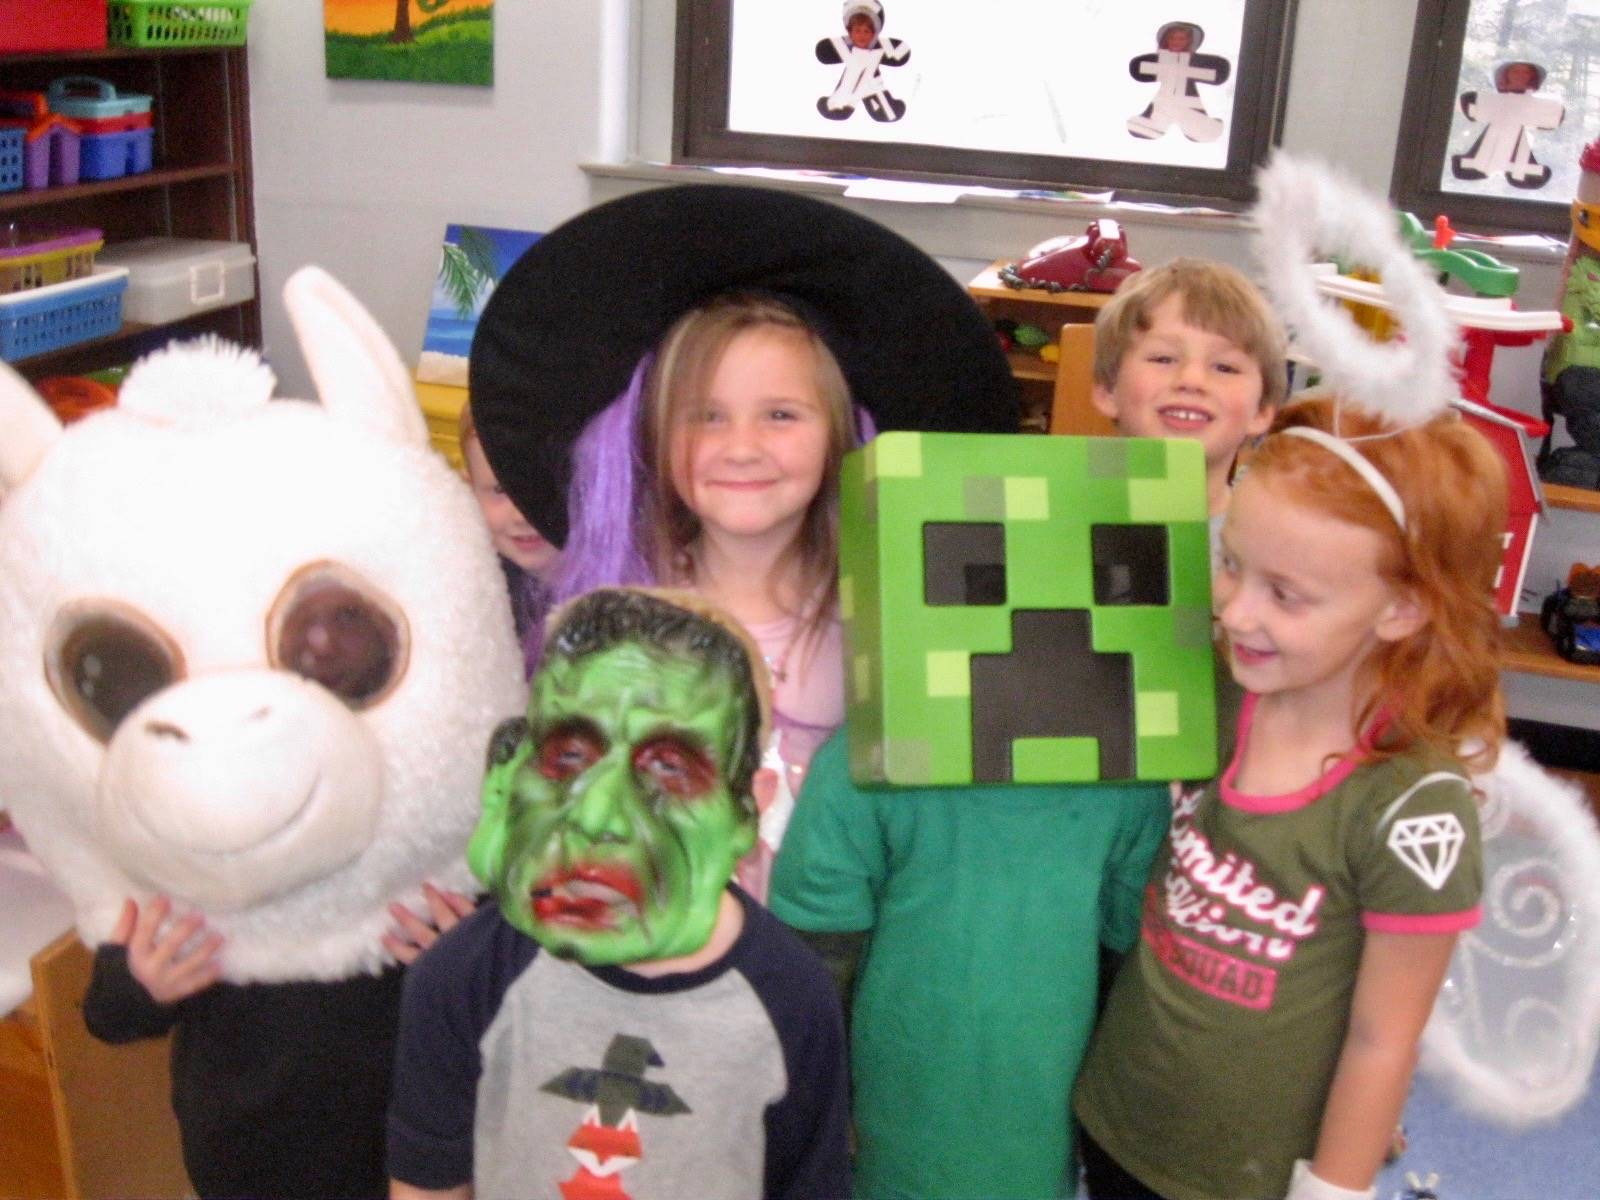 A group of 5 students dressed up.